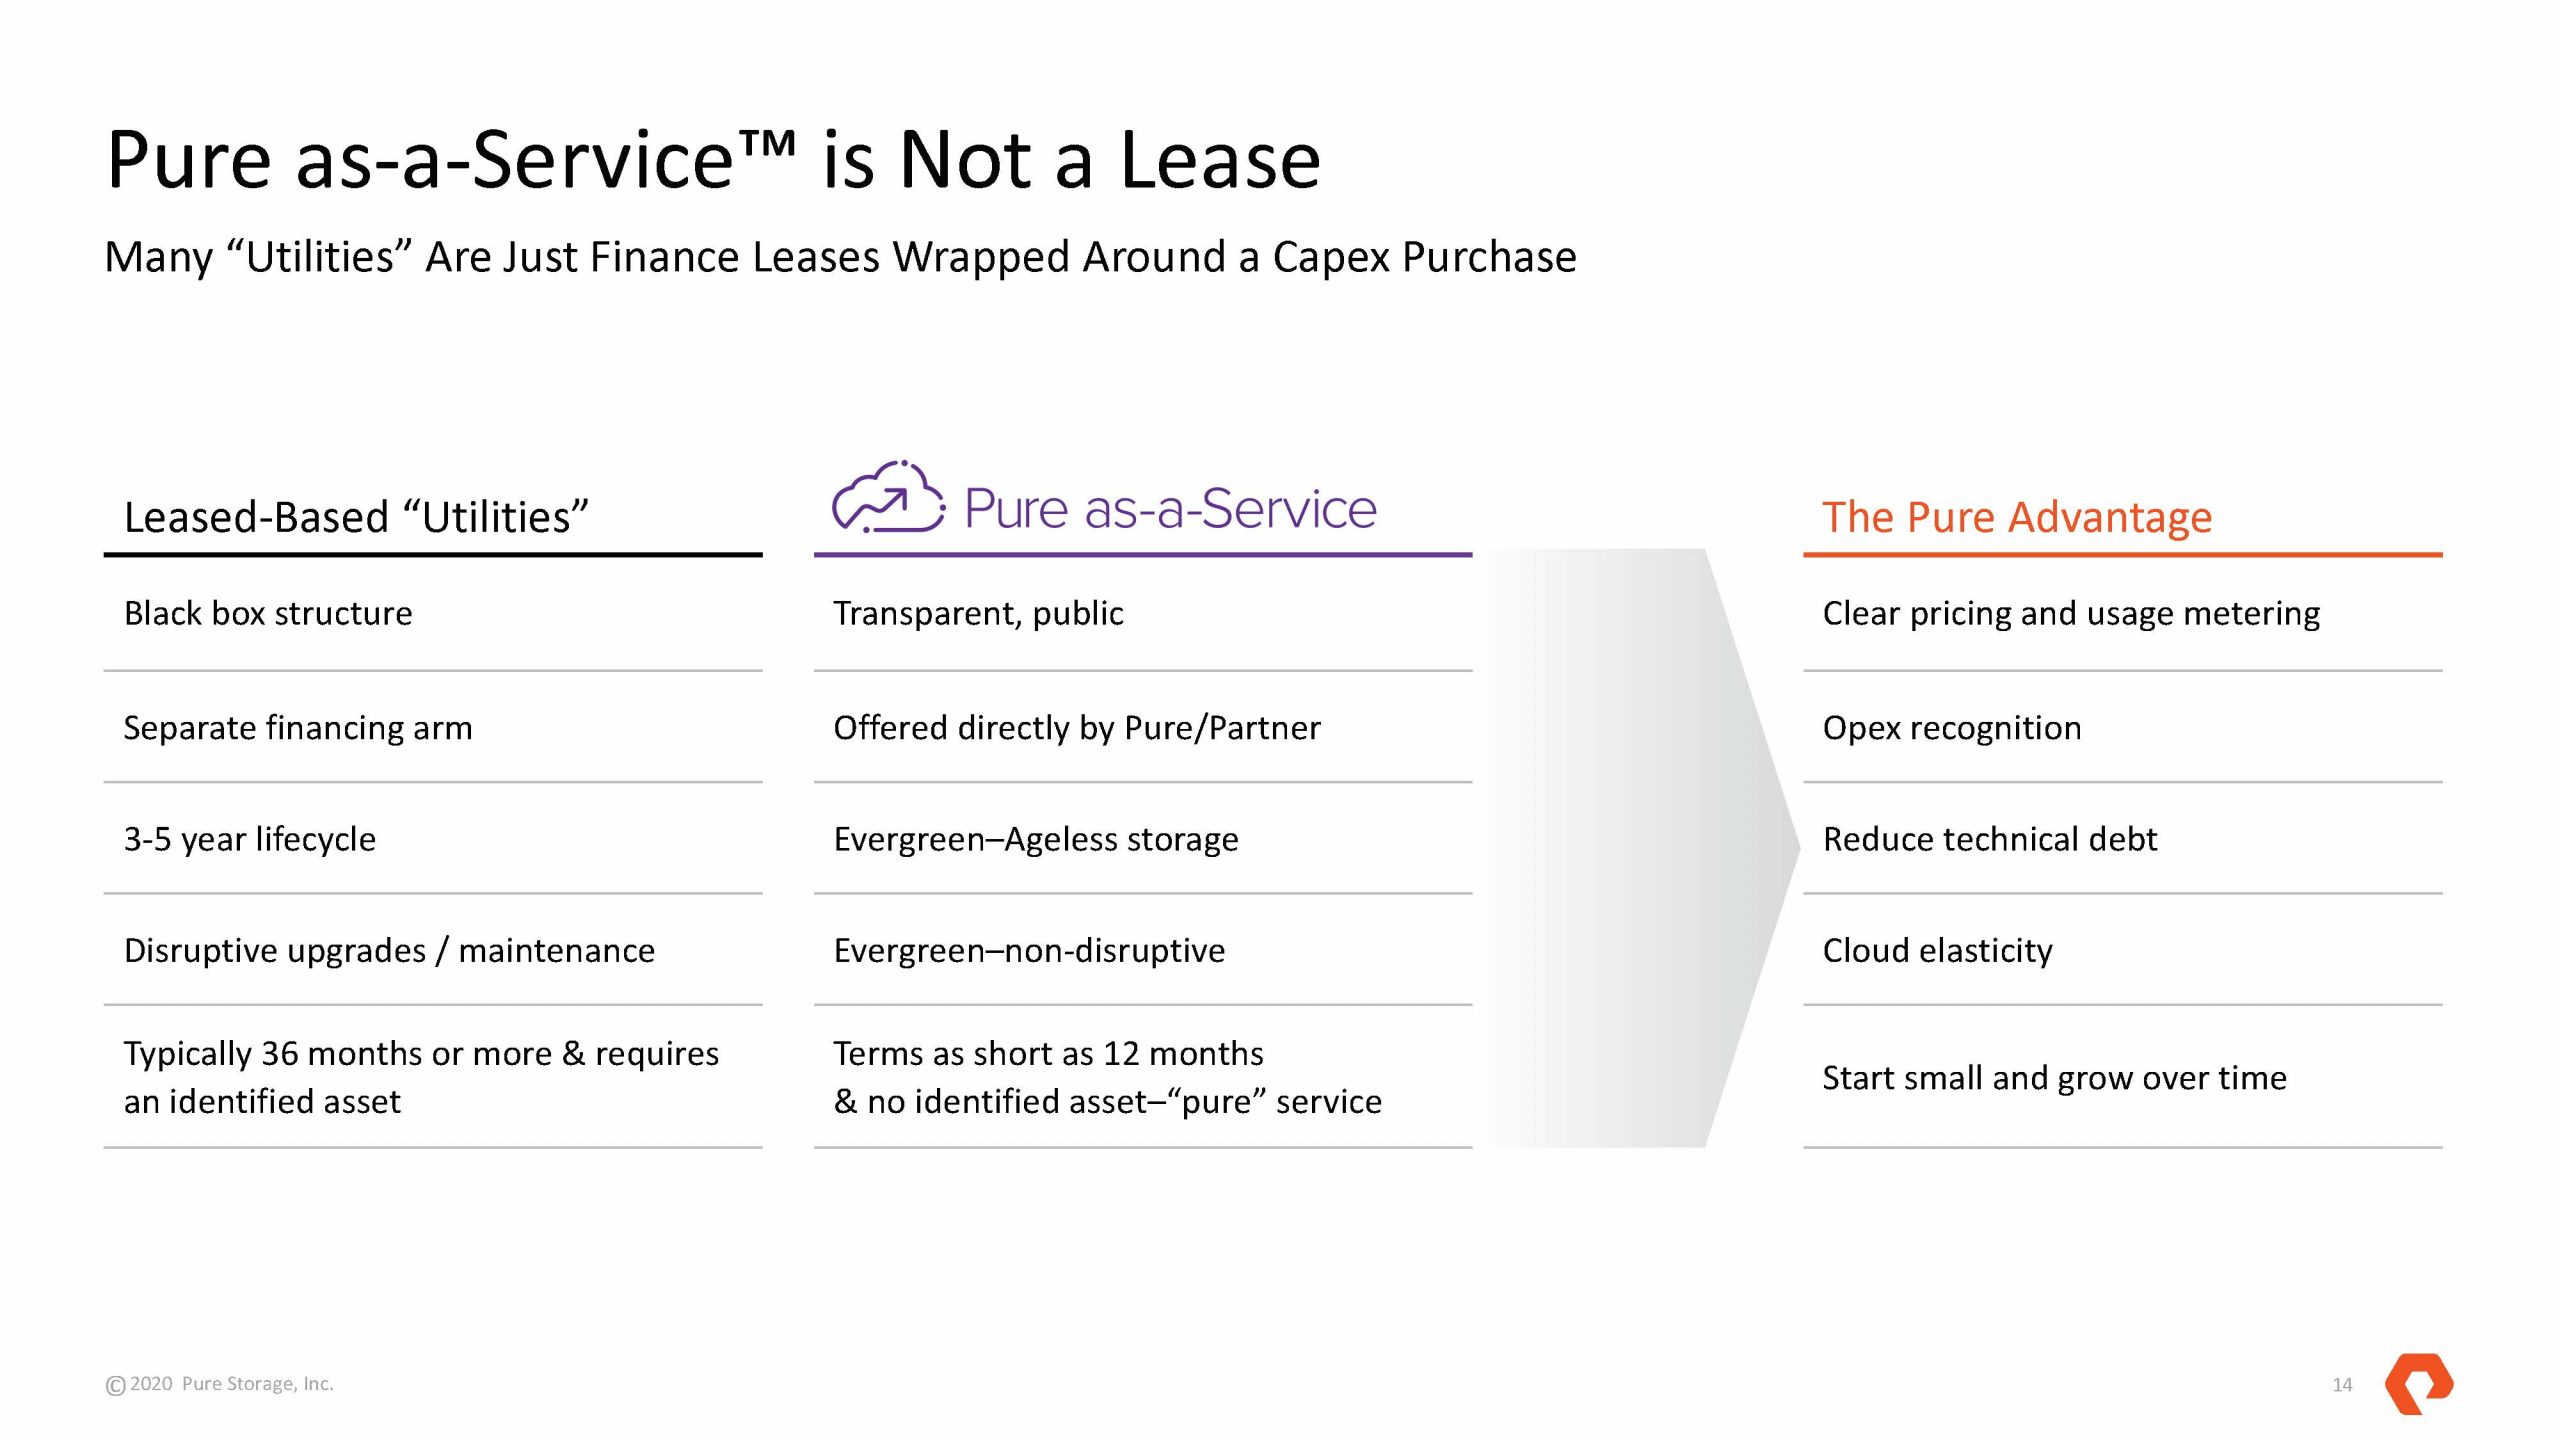 Pure As A Service V. Lease Based